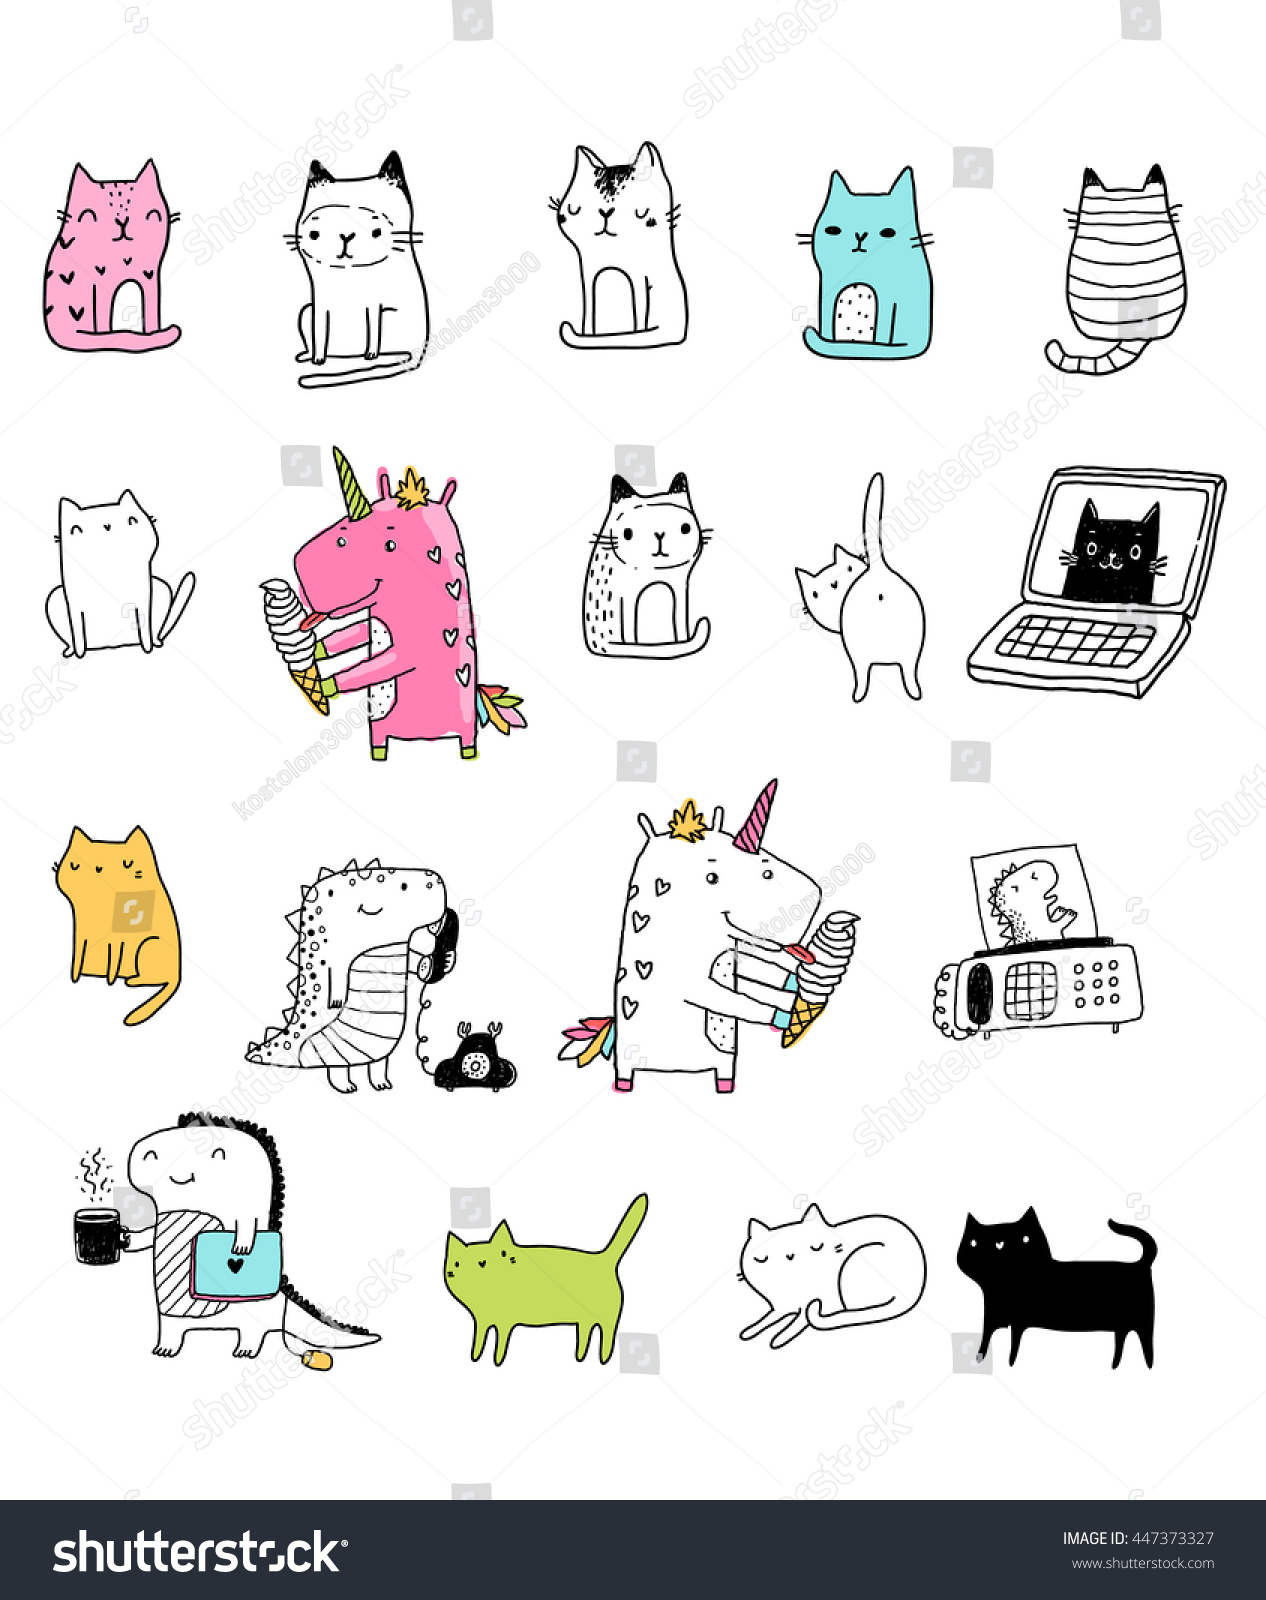 Funny Stickers With Unicorn Eating Ice Cream Black Cats White Kitties Cute Dinosaurs